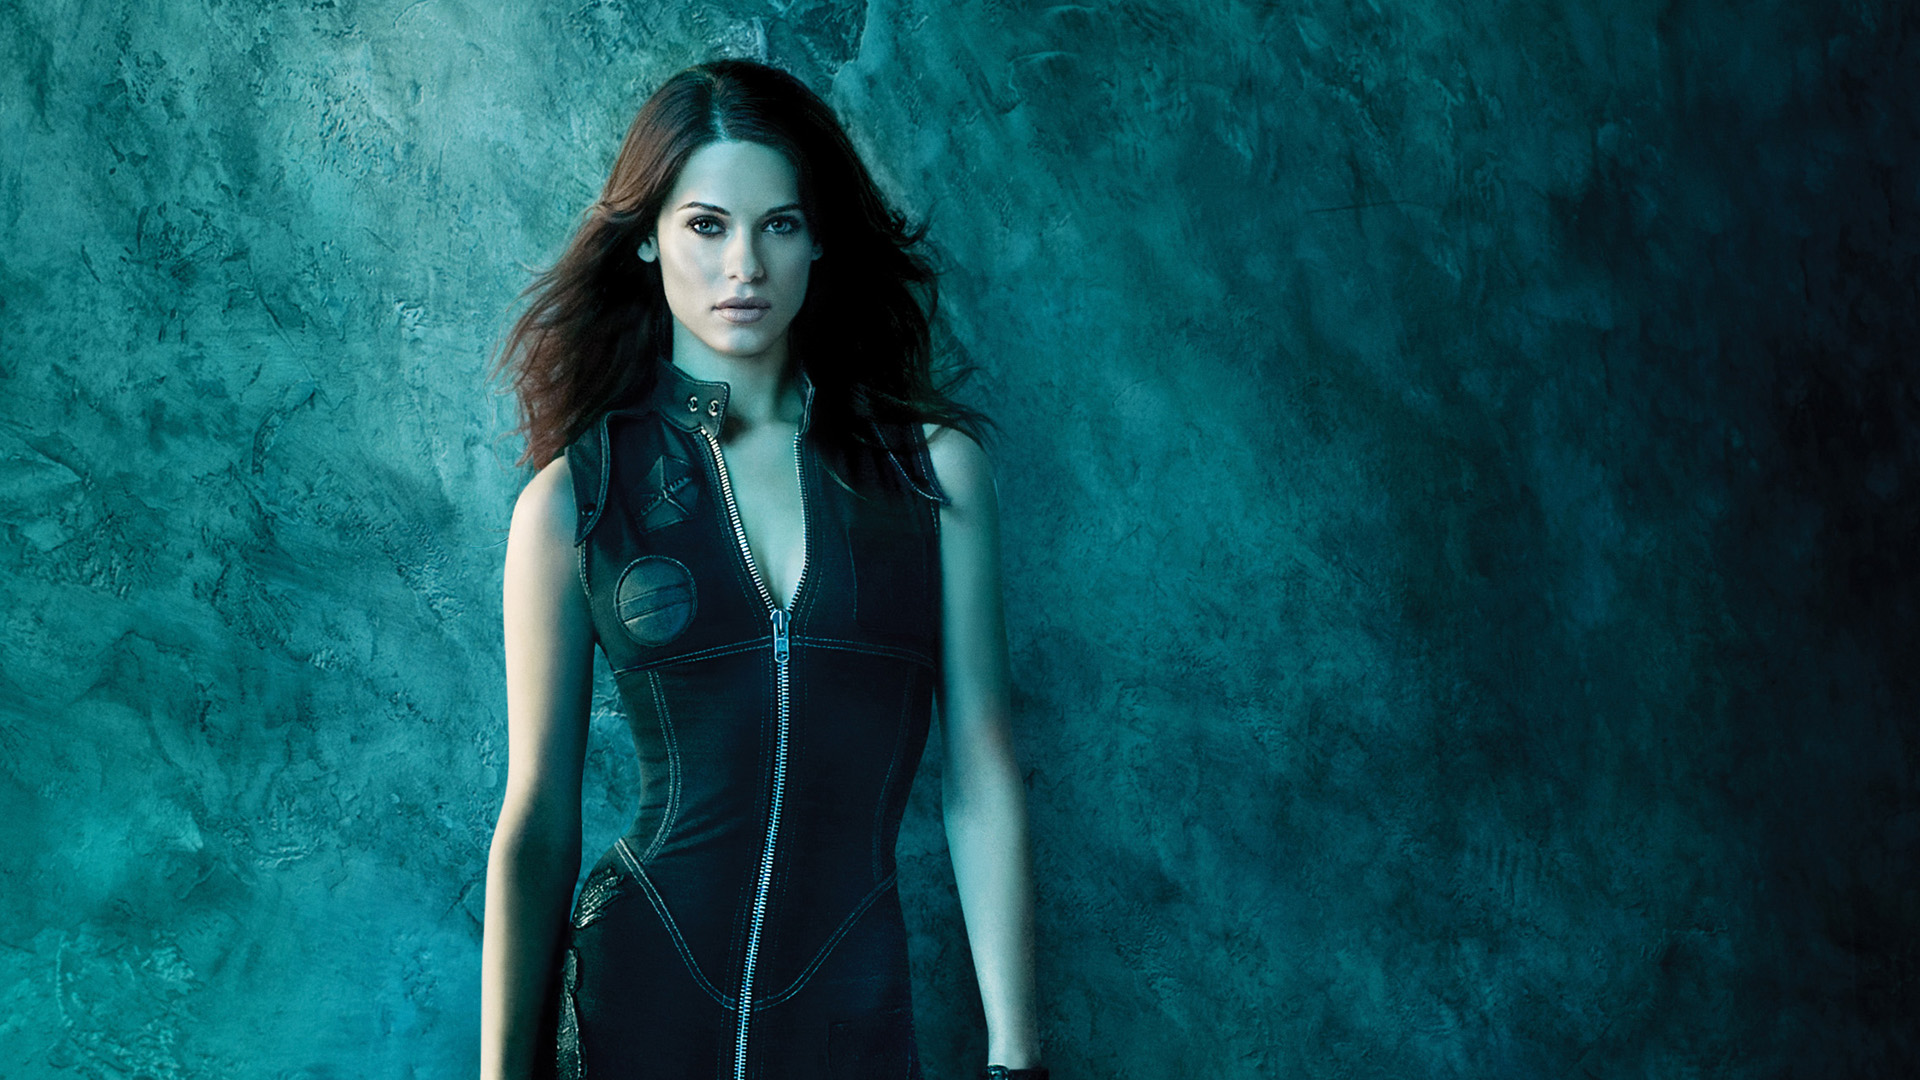 Quelle: http://defwalls.com/wallpapers-n/brunettes-women-actress-celebrity-Lyndsy-Fonseca-science-fiction-_1769-44.jpg